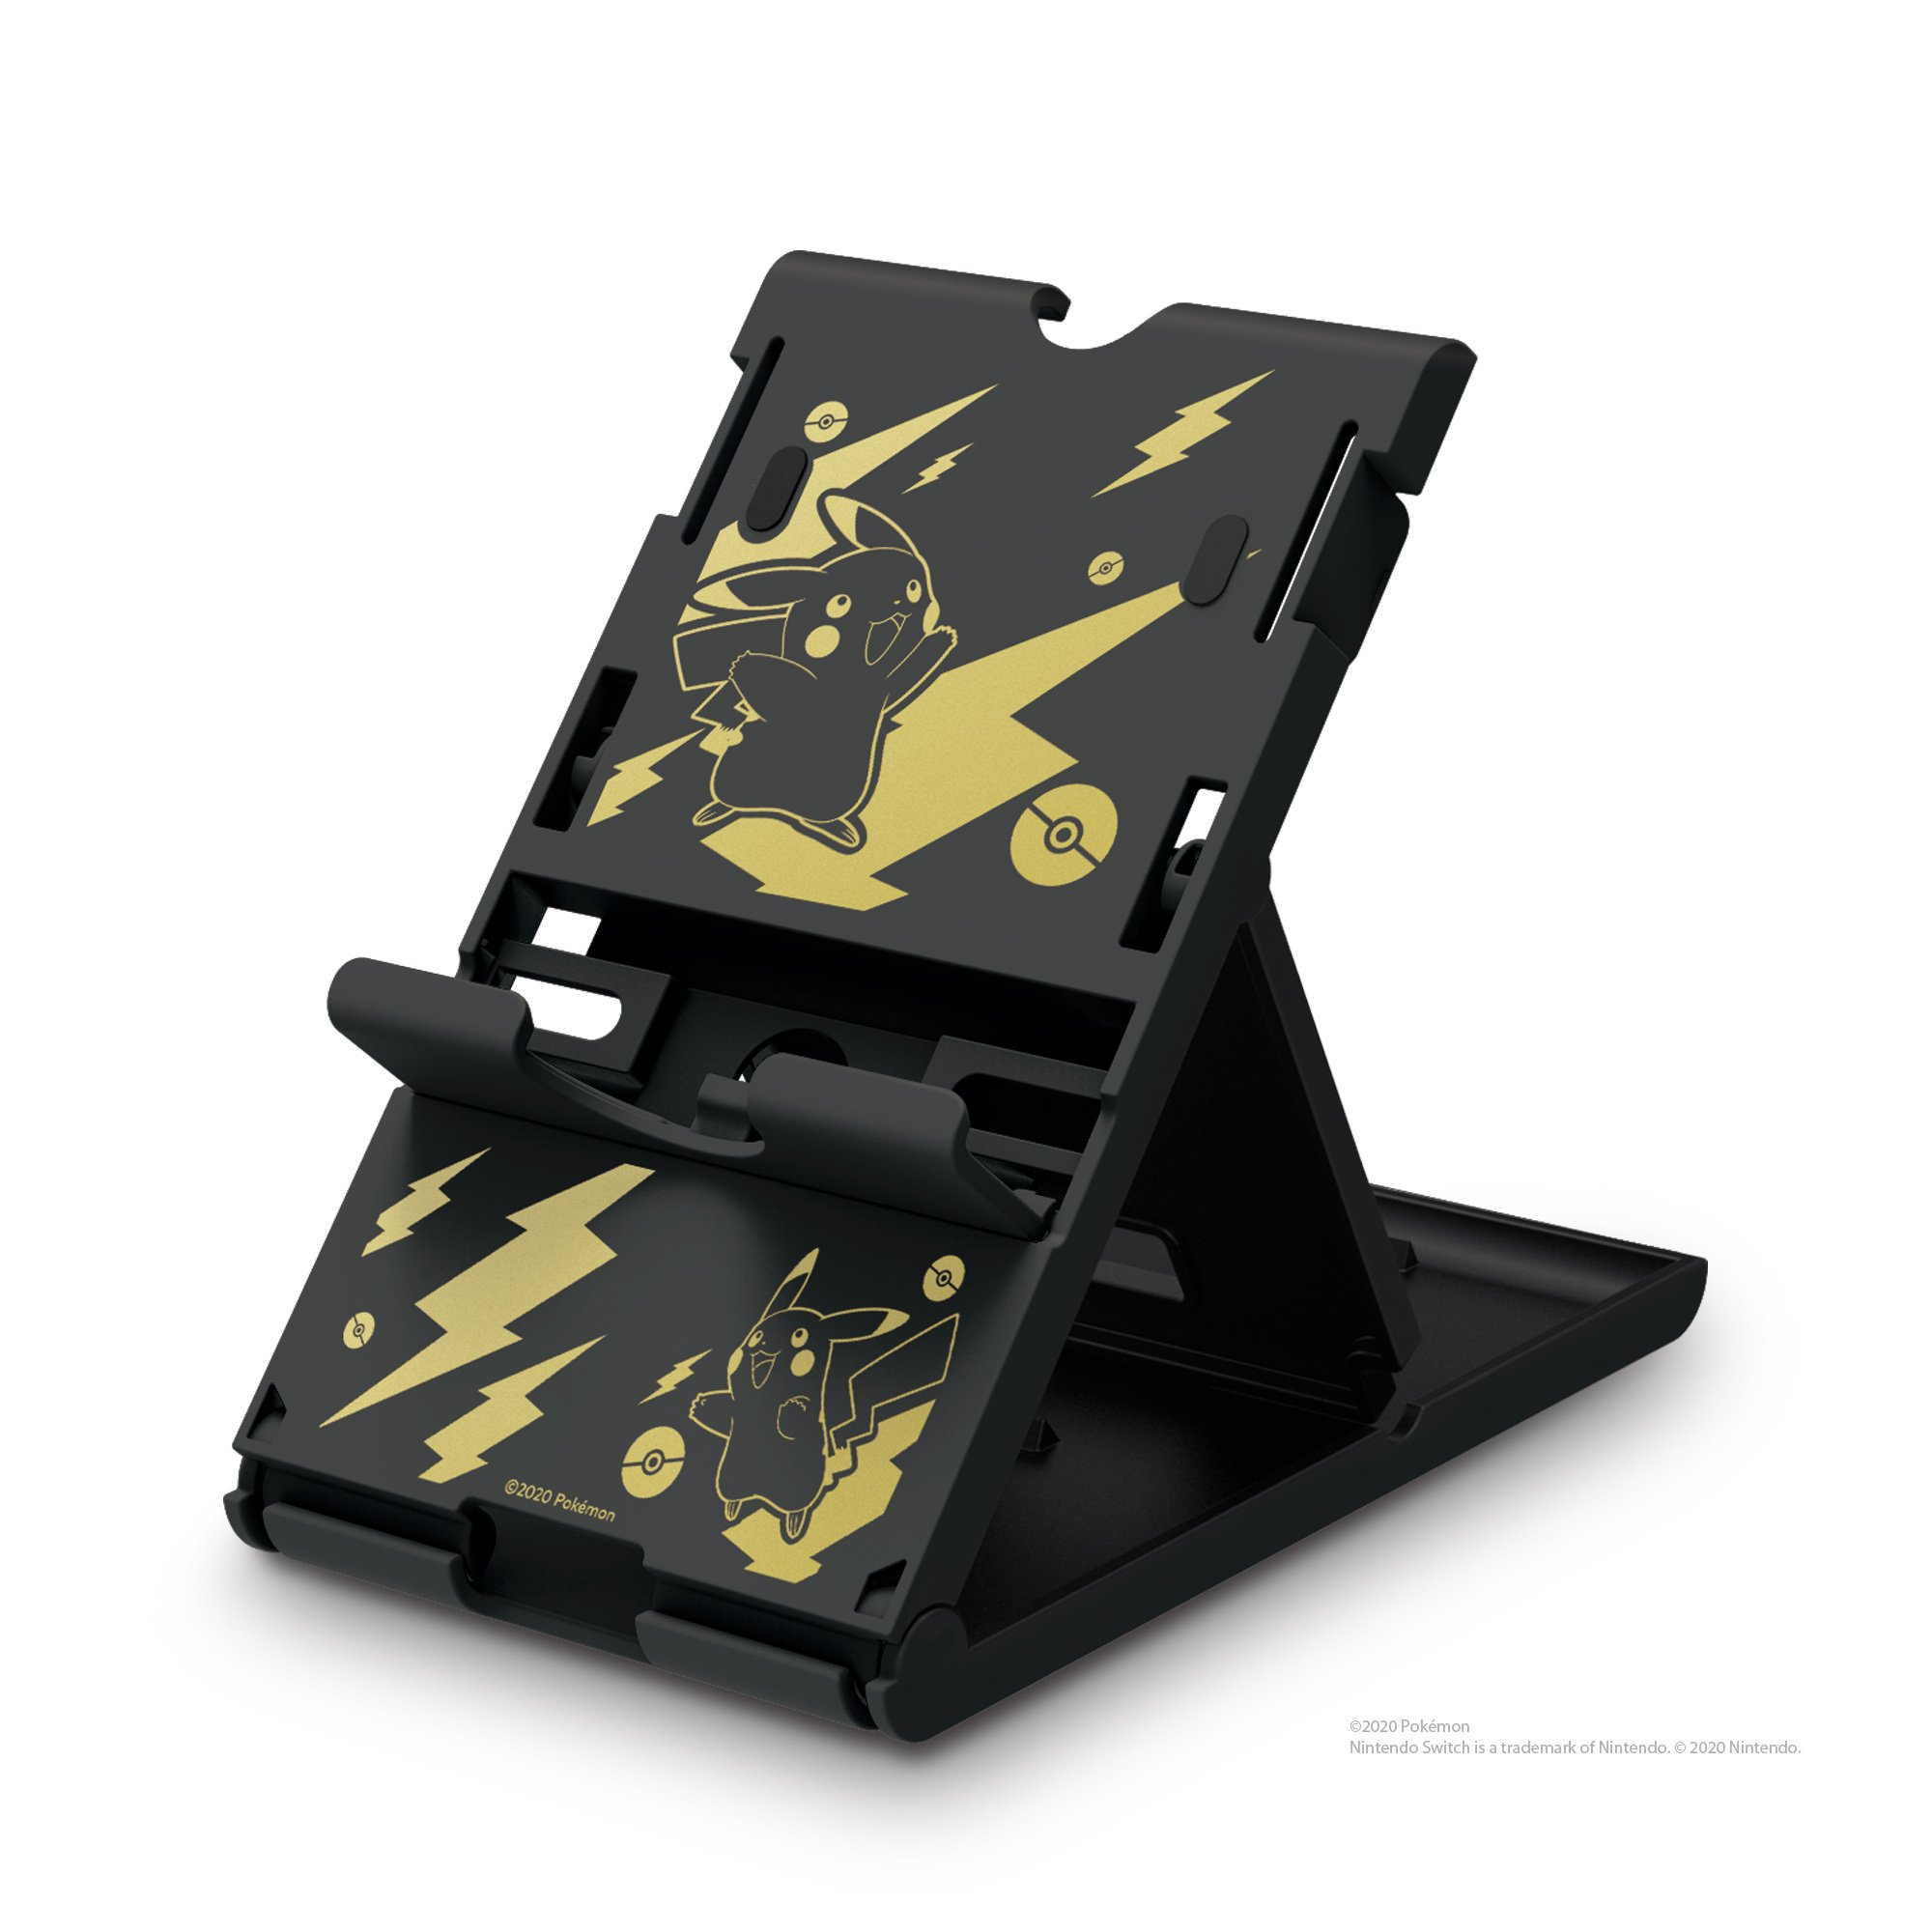 PlayStand (Picachu Black & Gold) Product Image6